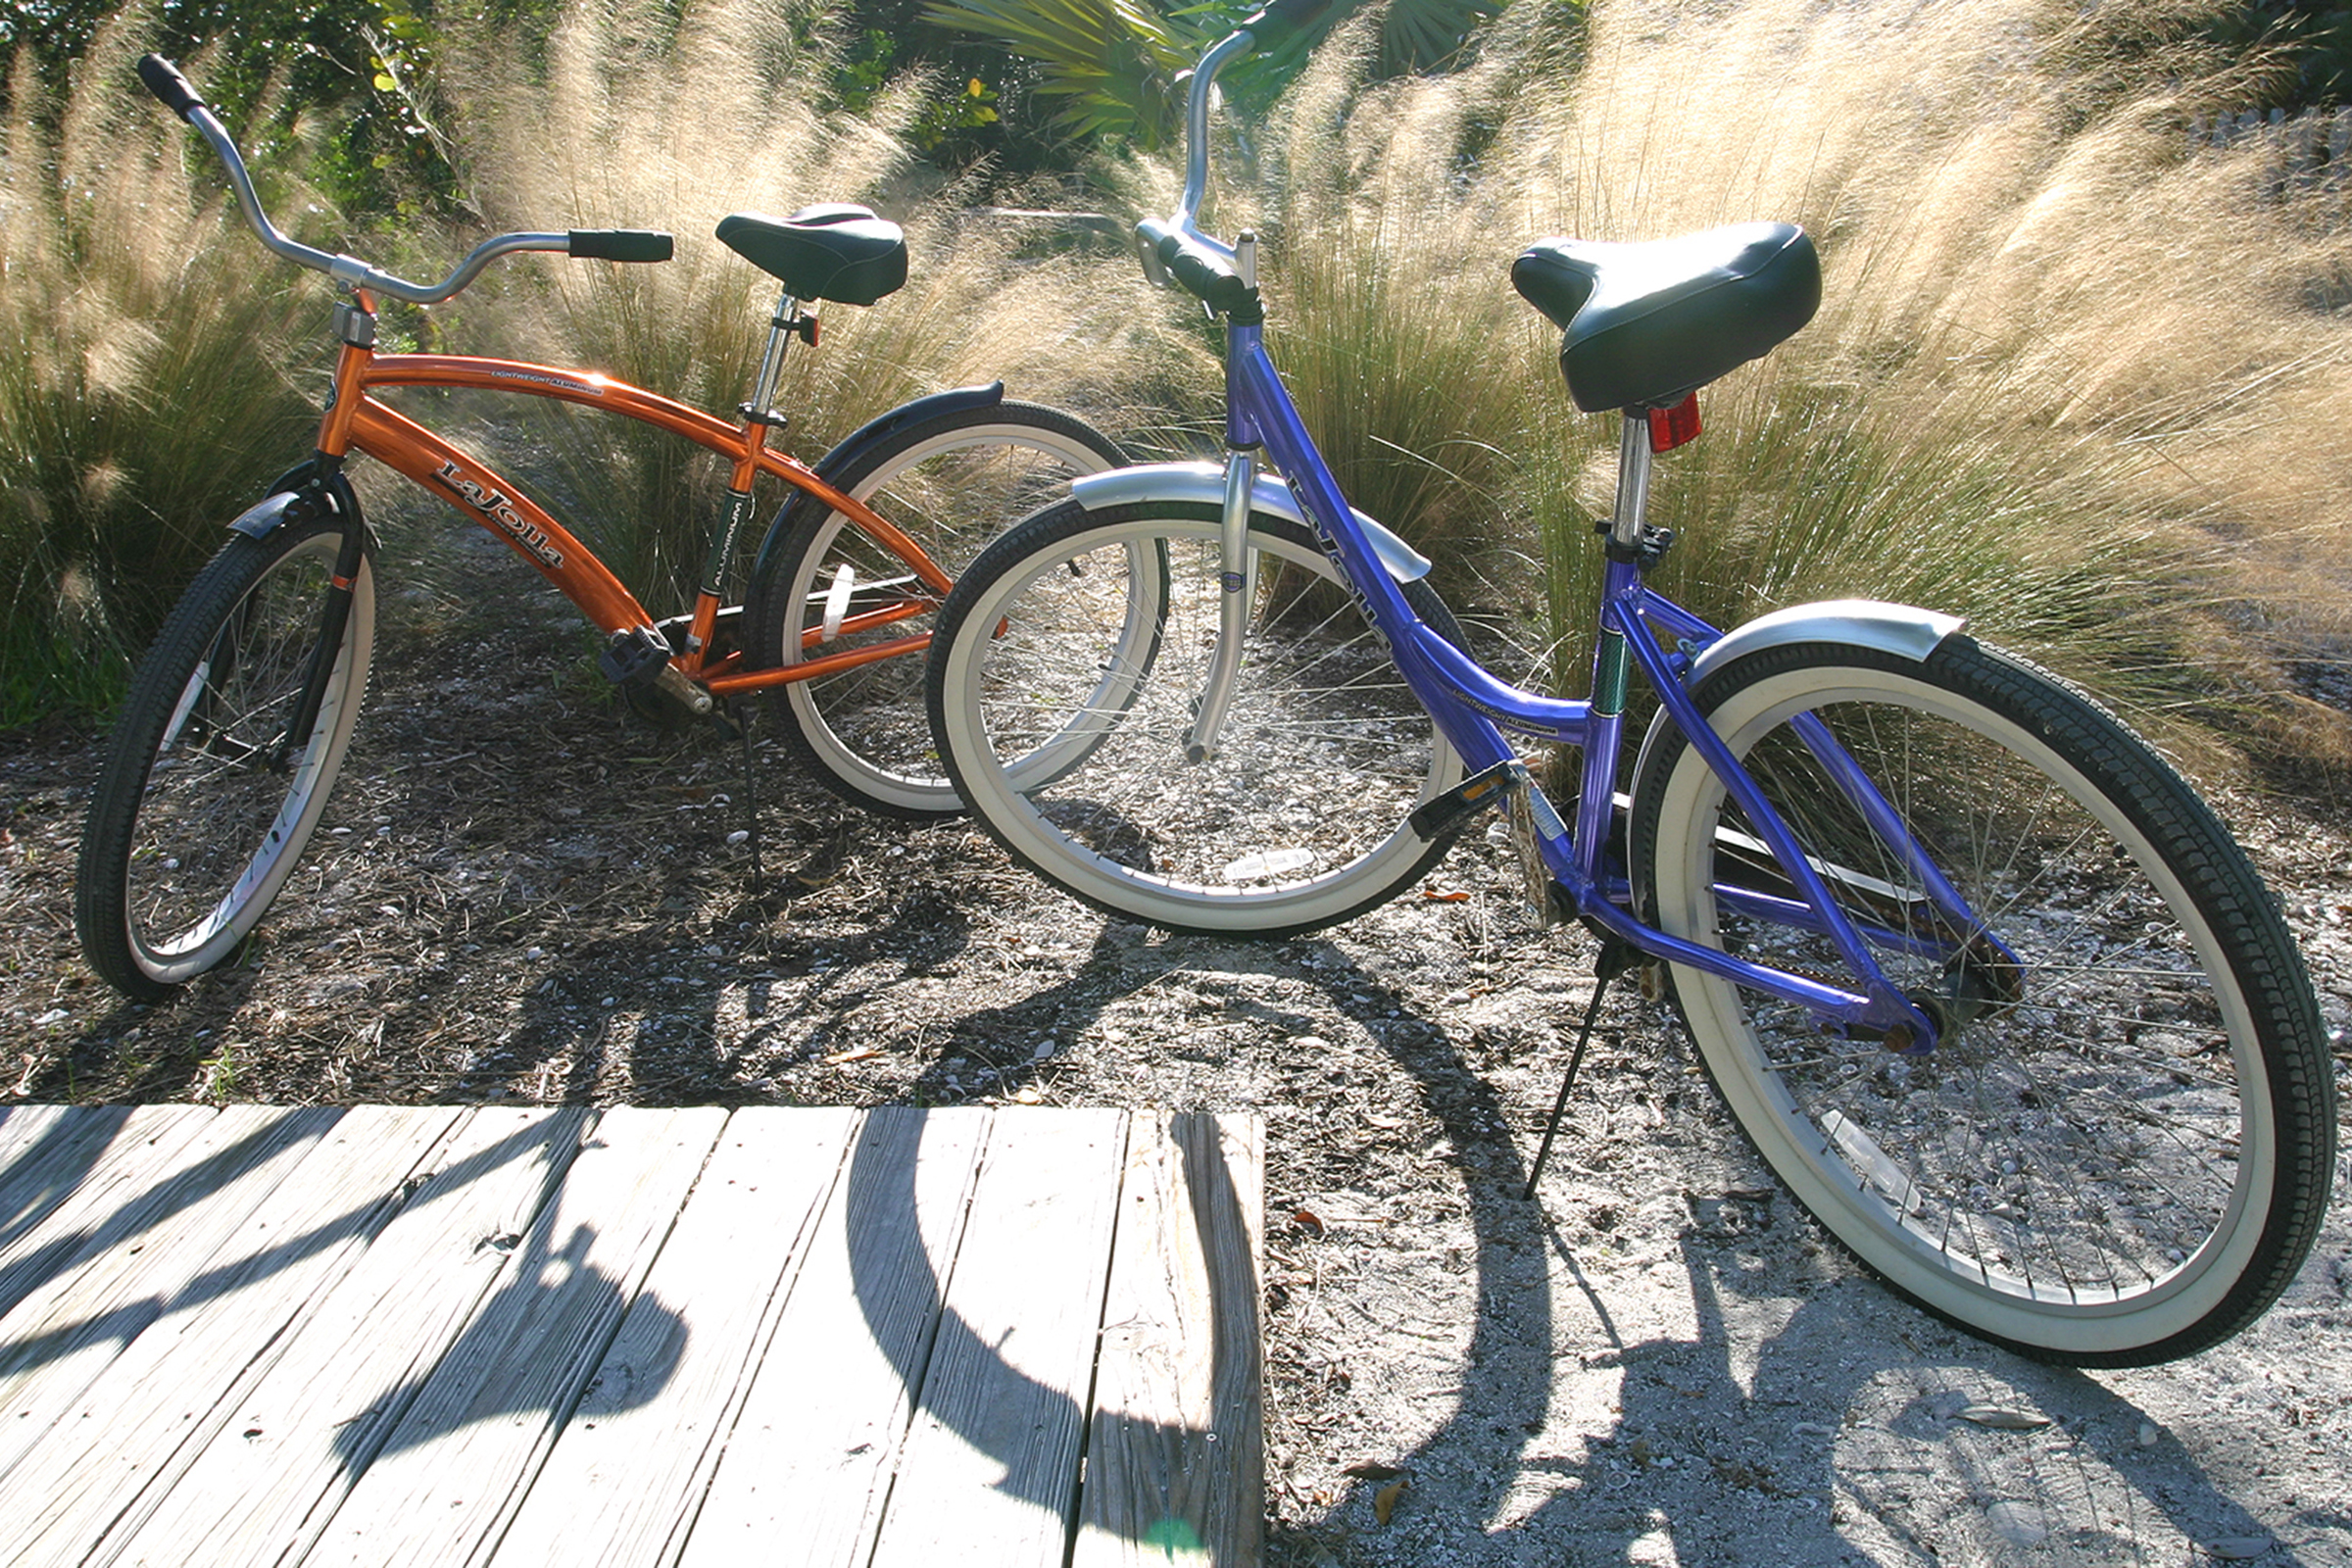 Two beach bikes are included